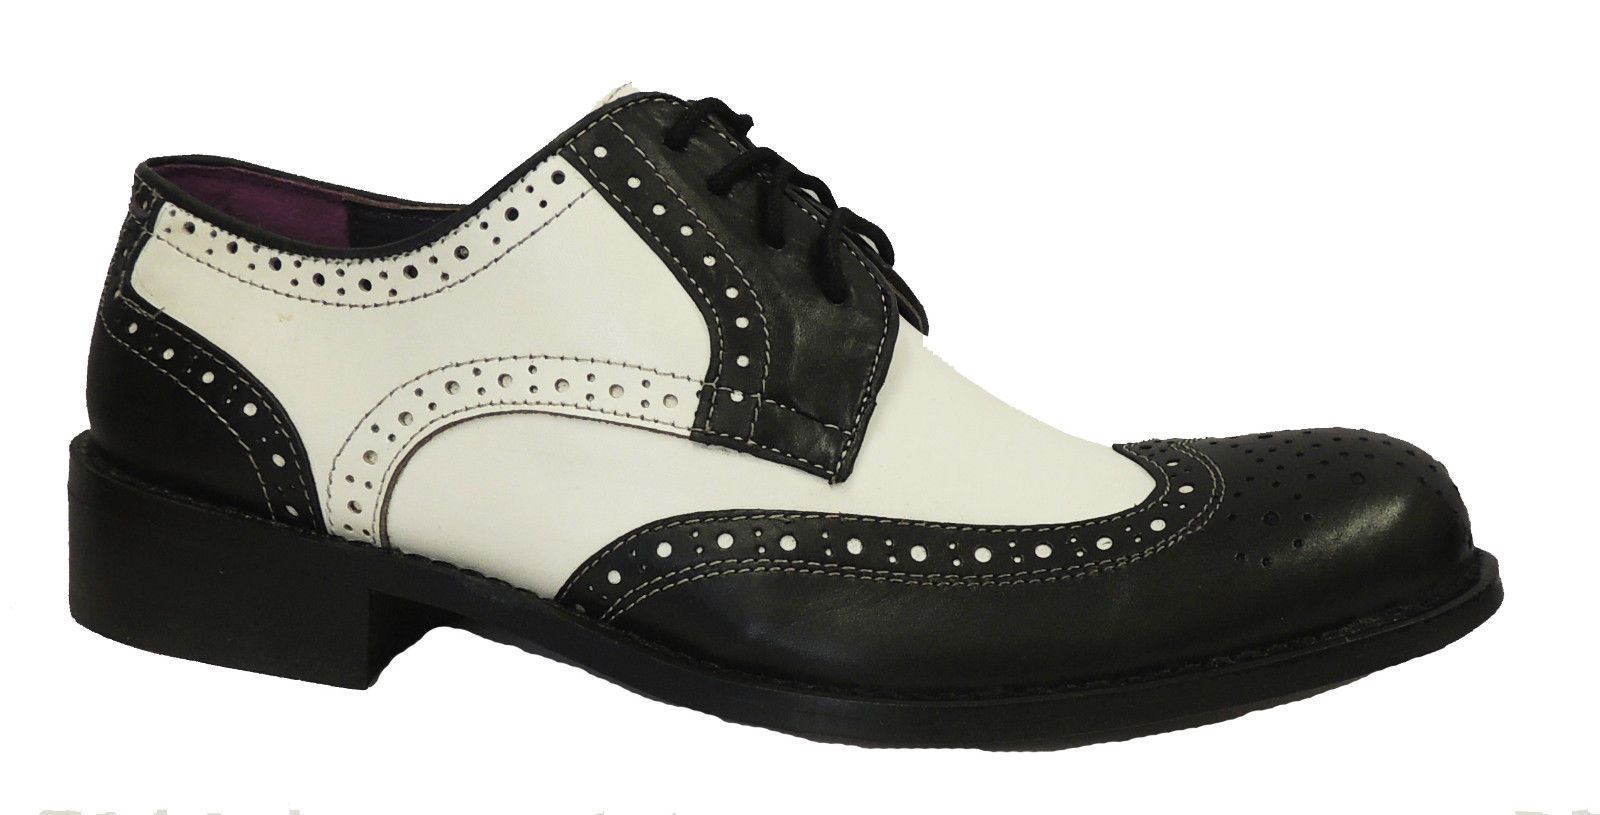 Two Tone Black And White Jazz Shoes